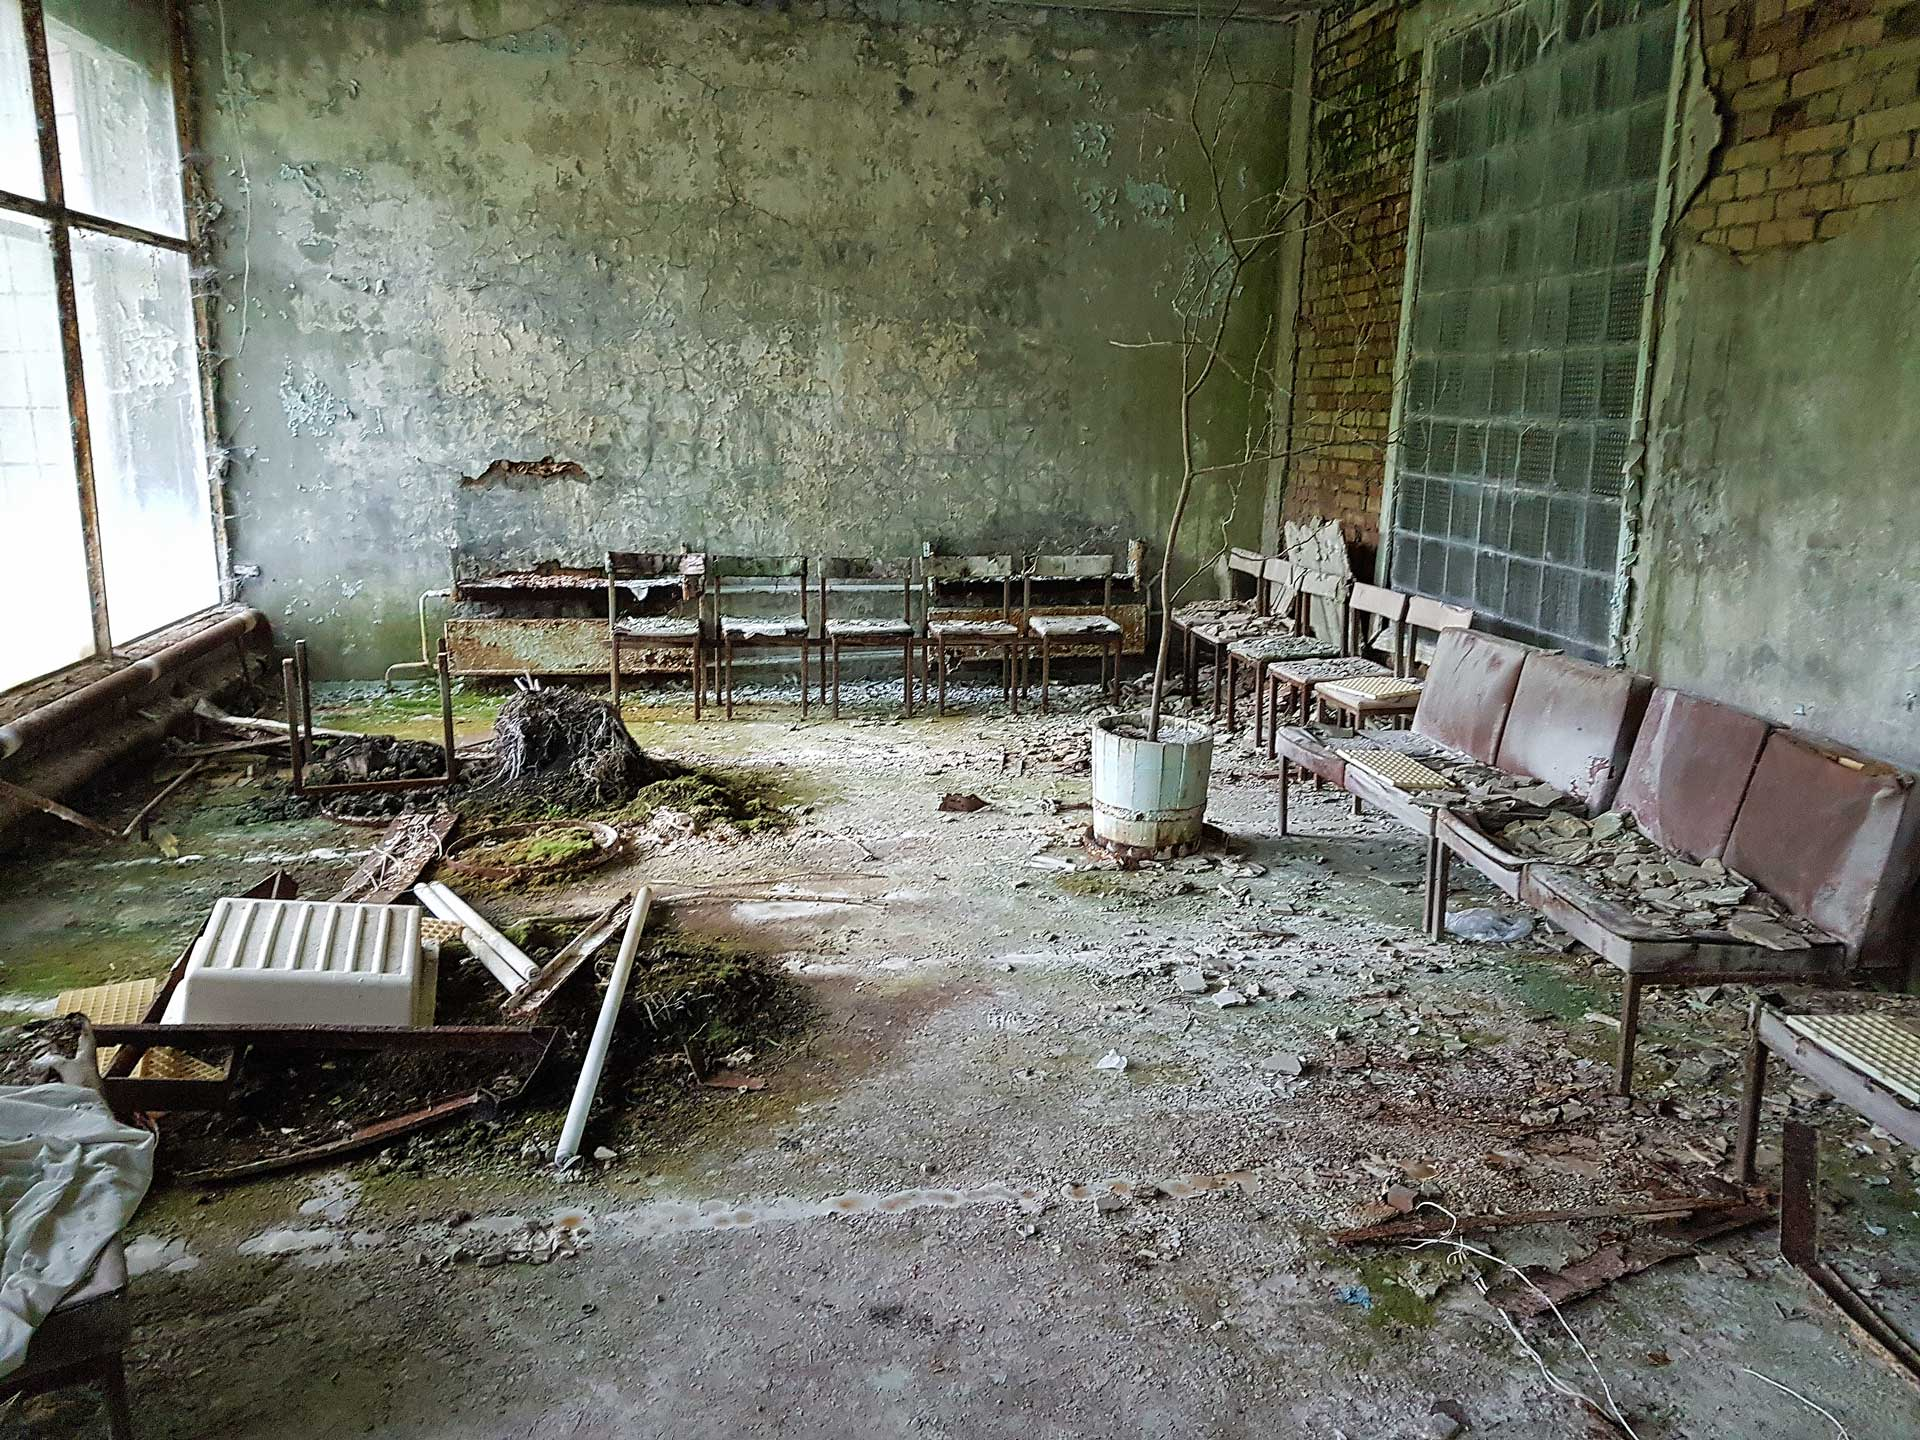 Palace-of-Culture-Pripyat-Energetic-11